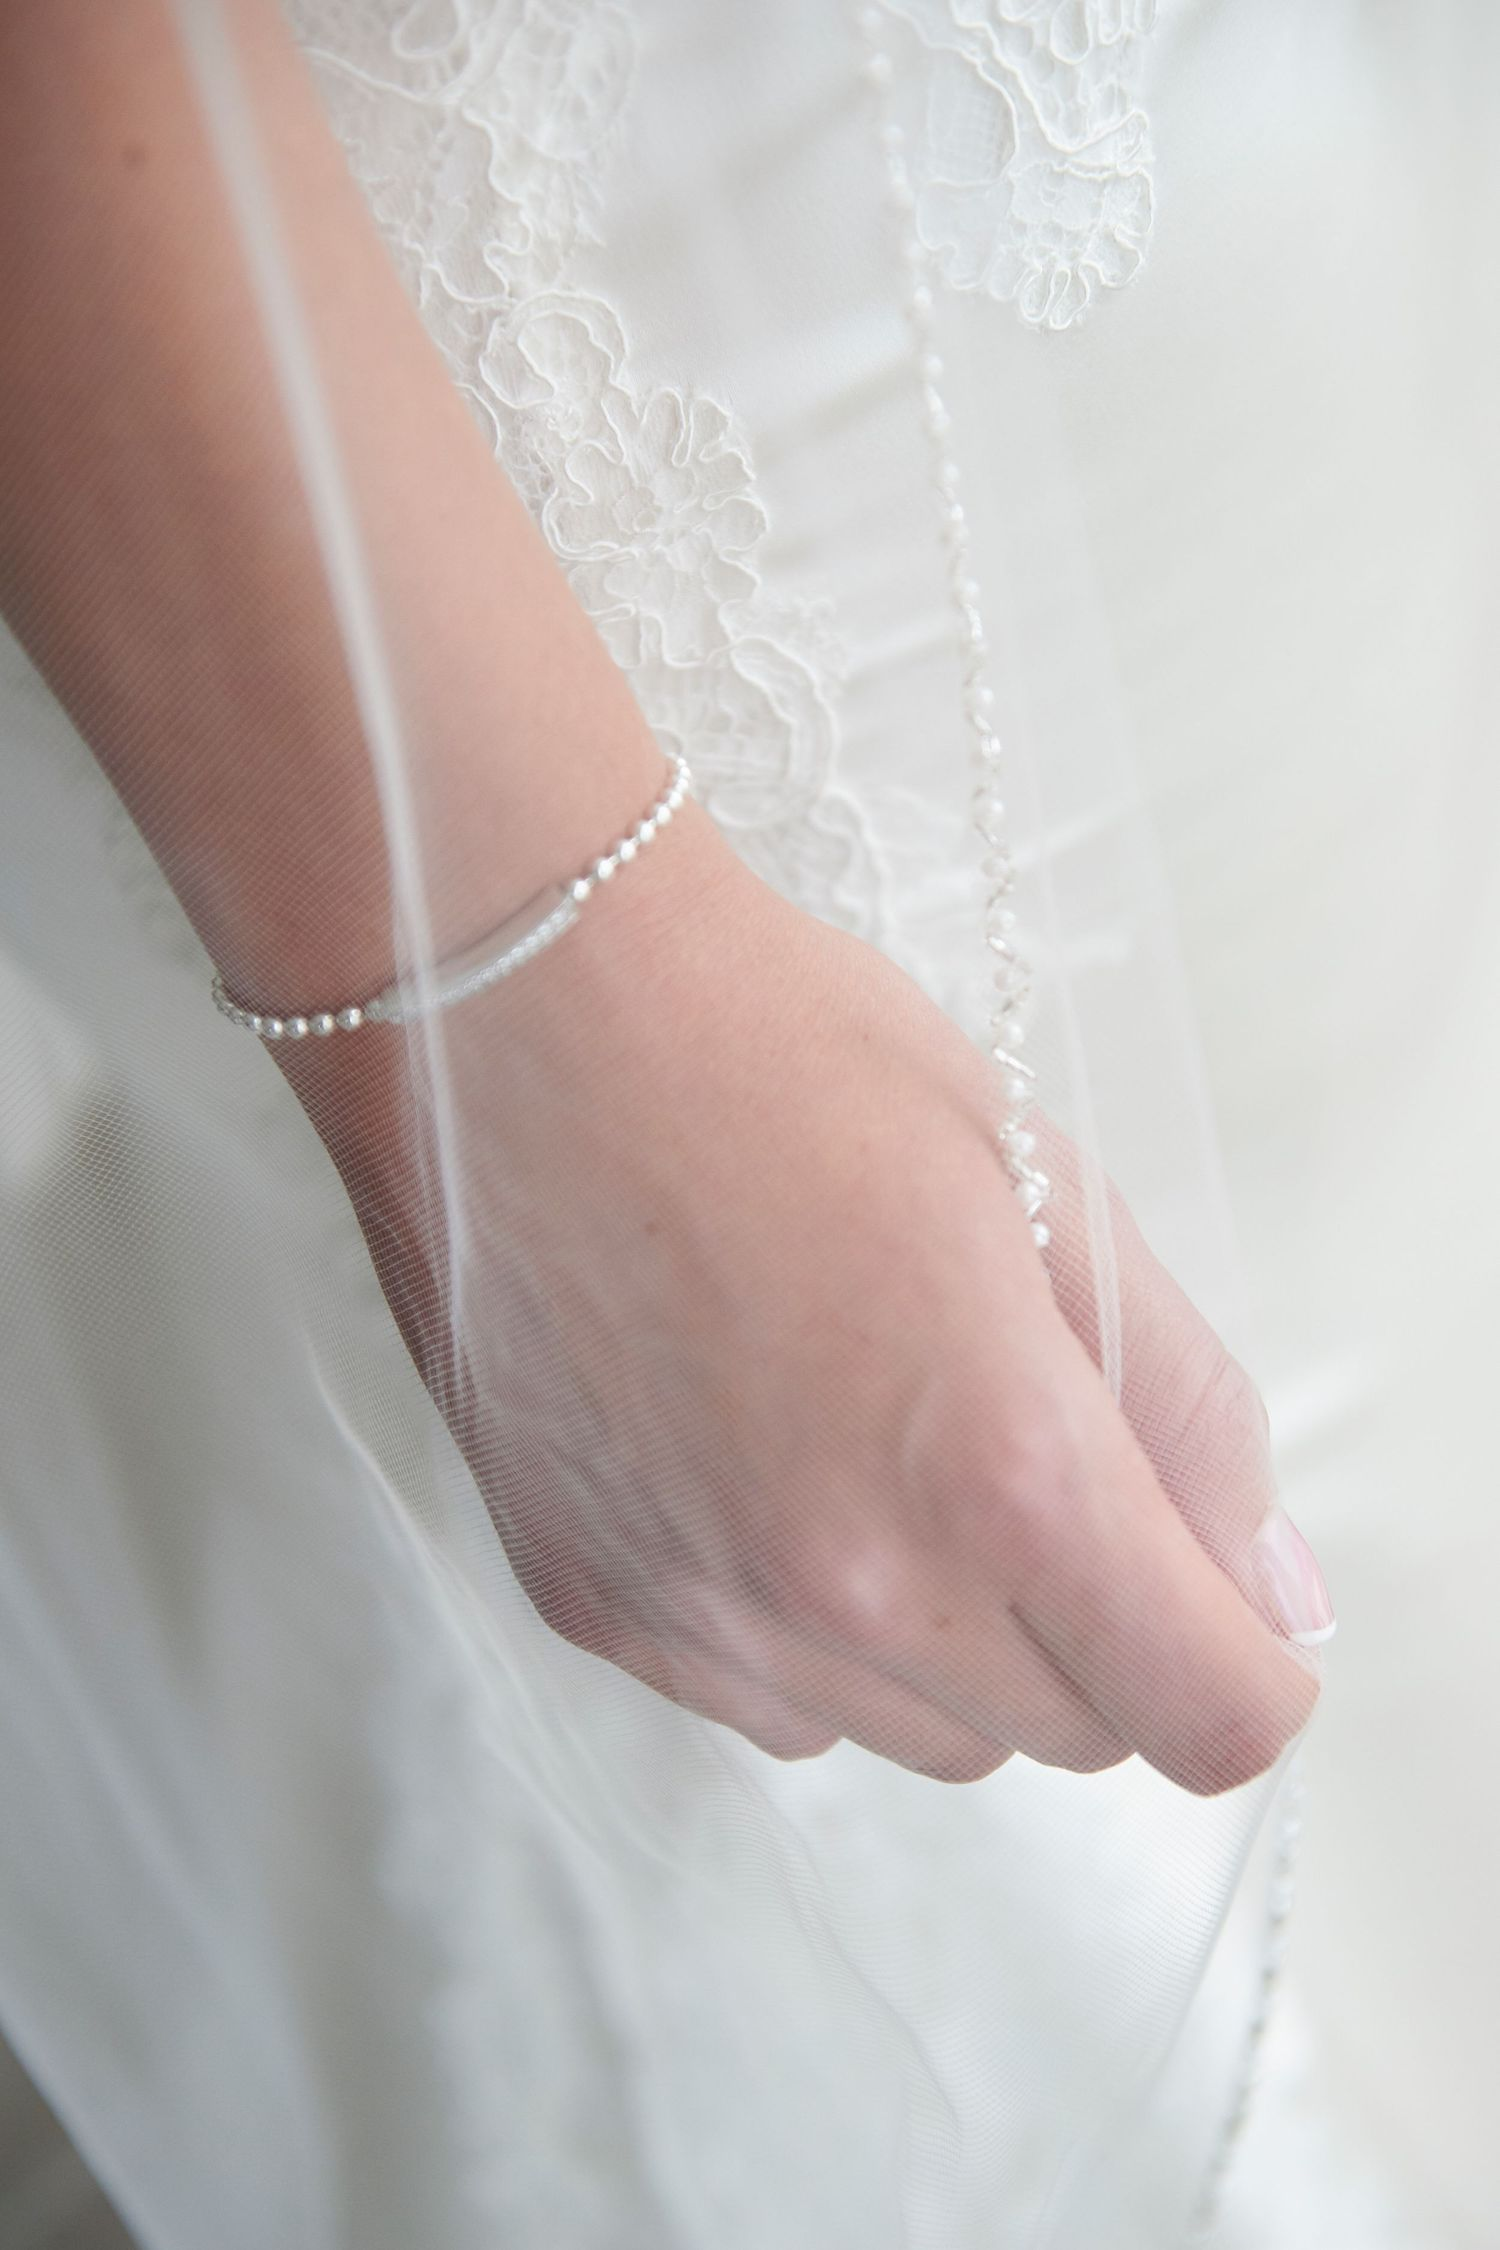 bride's hand holding her vail